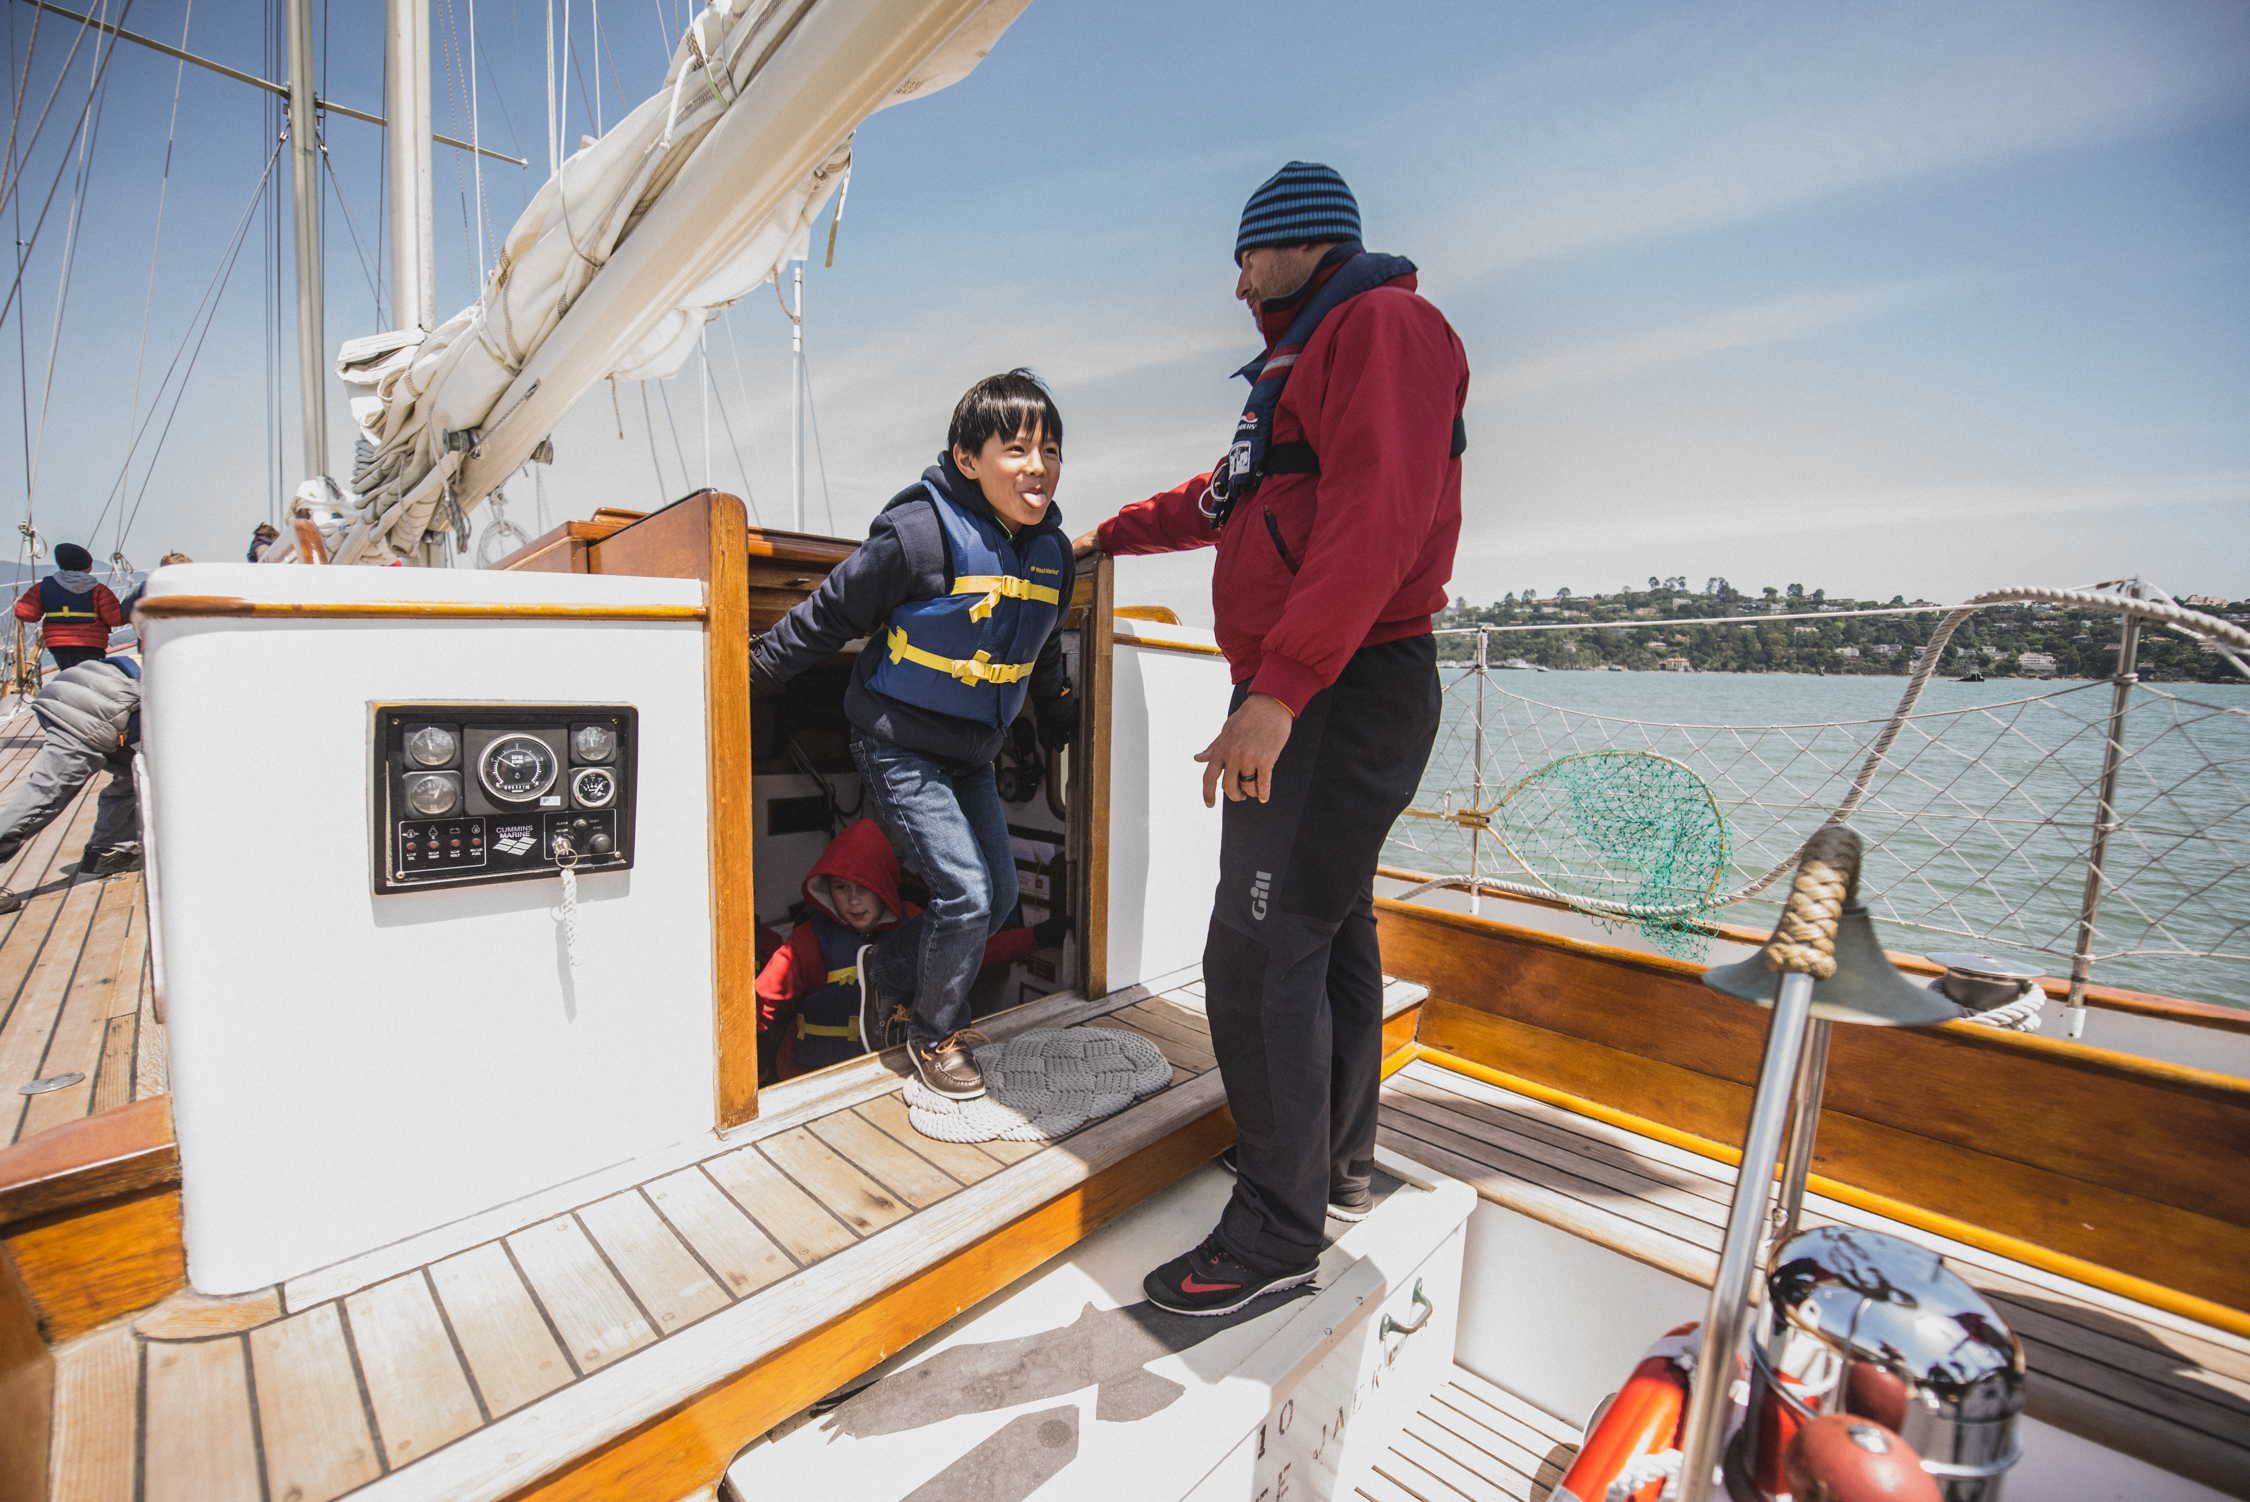 Call of the Sea - San Francisco - Another Look - 05.06.16-126.jpg